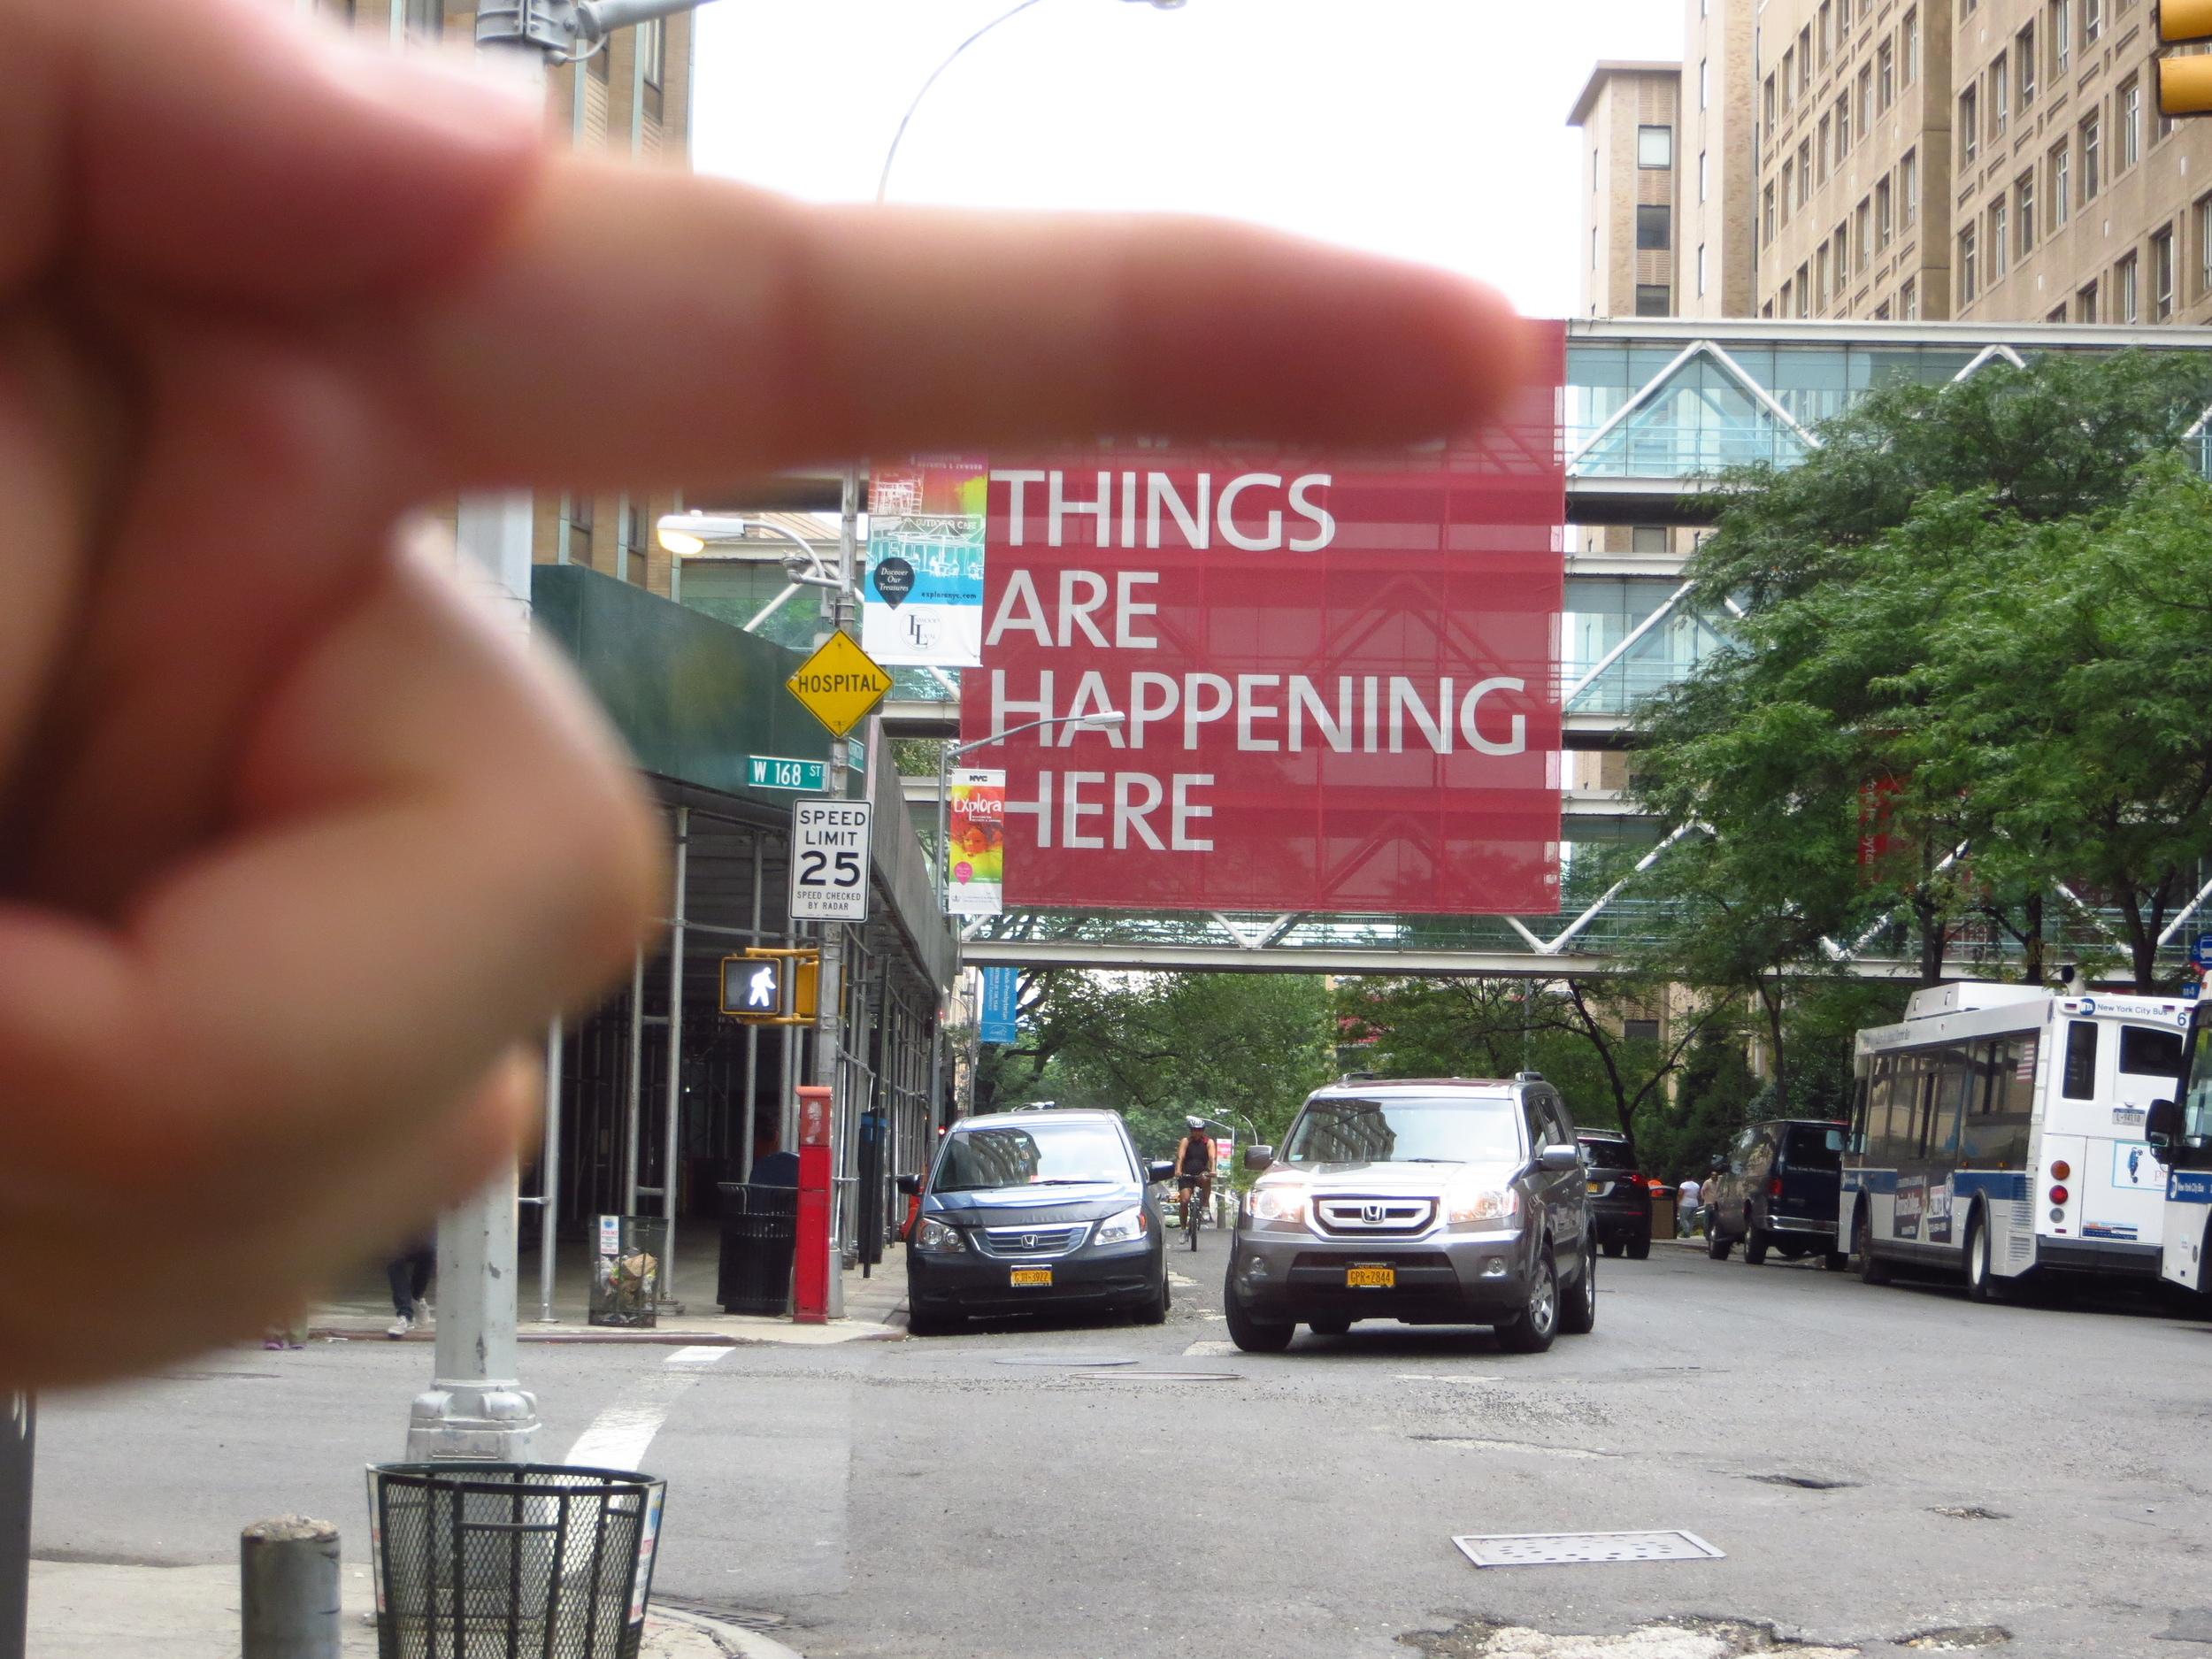 Columbia/NY Presbyterian Hospital skyways (don't know how that stranger's finger got in the shot)